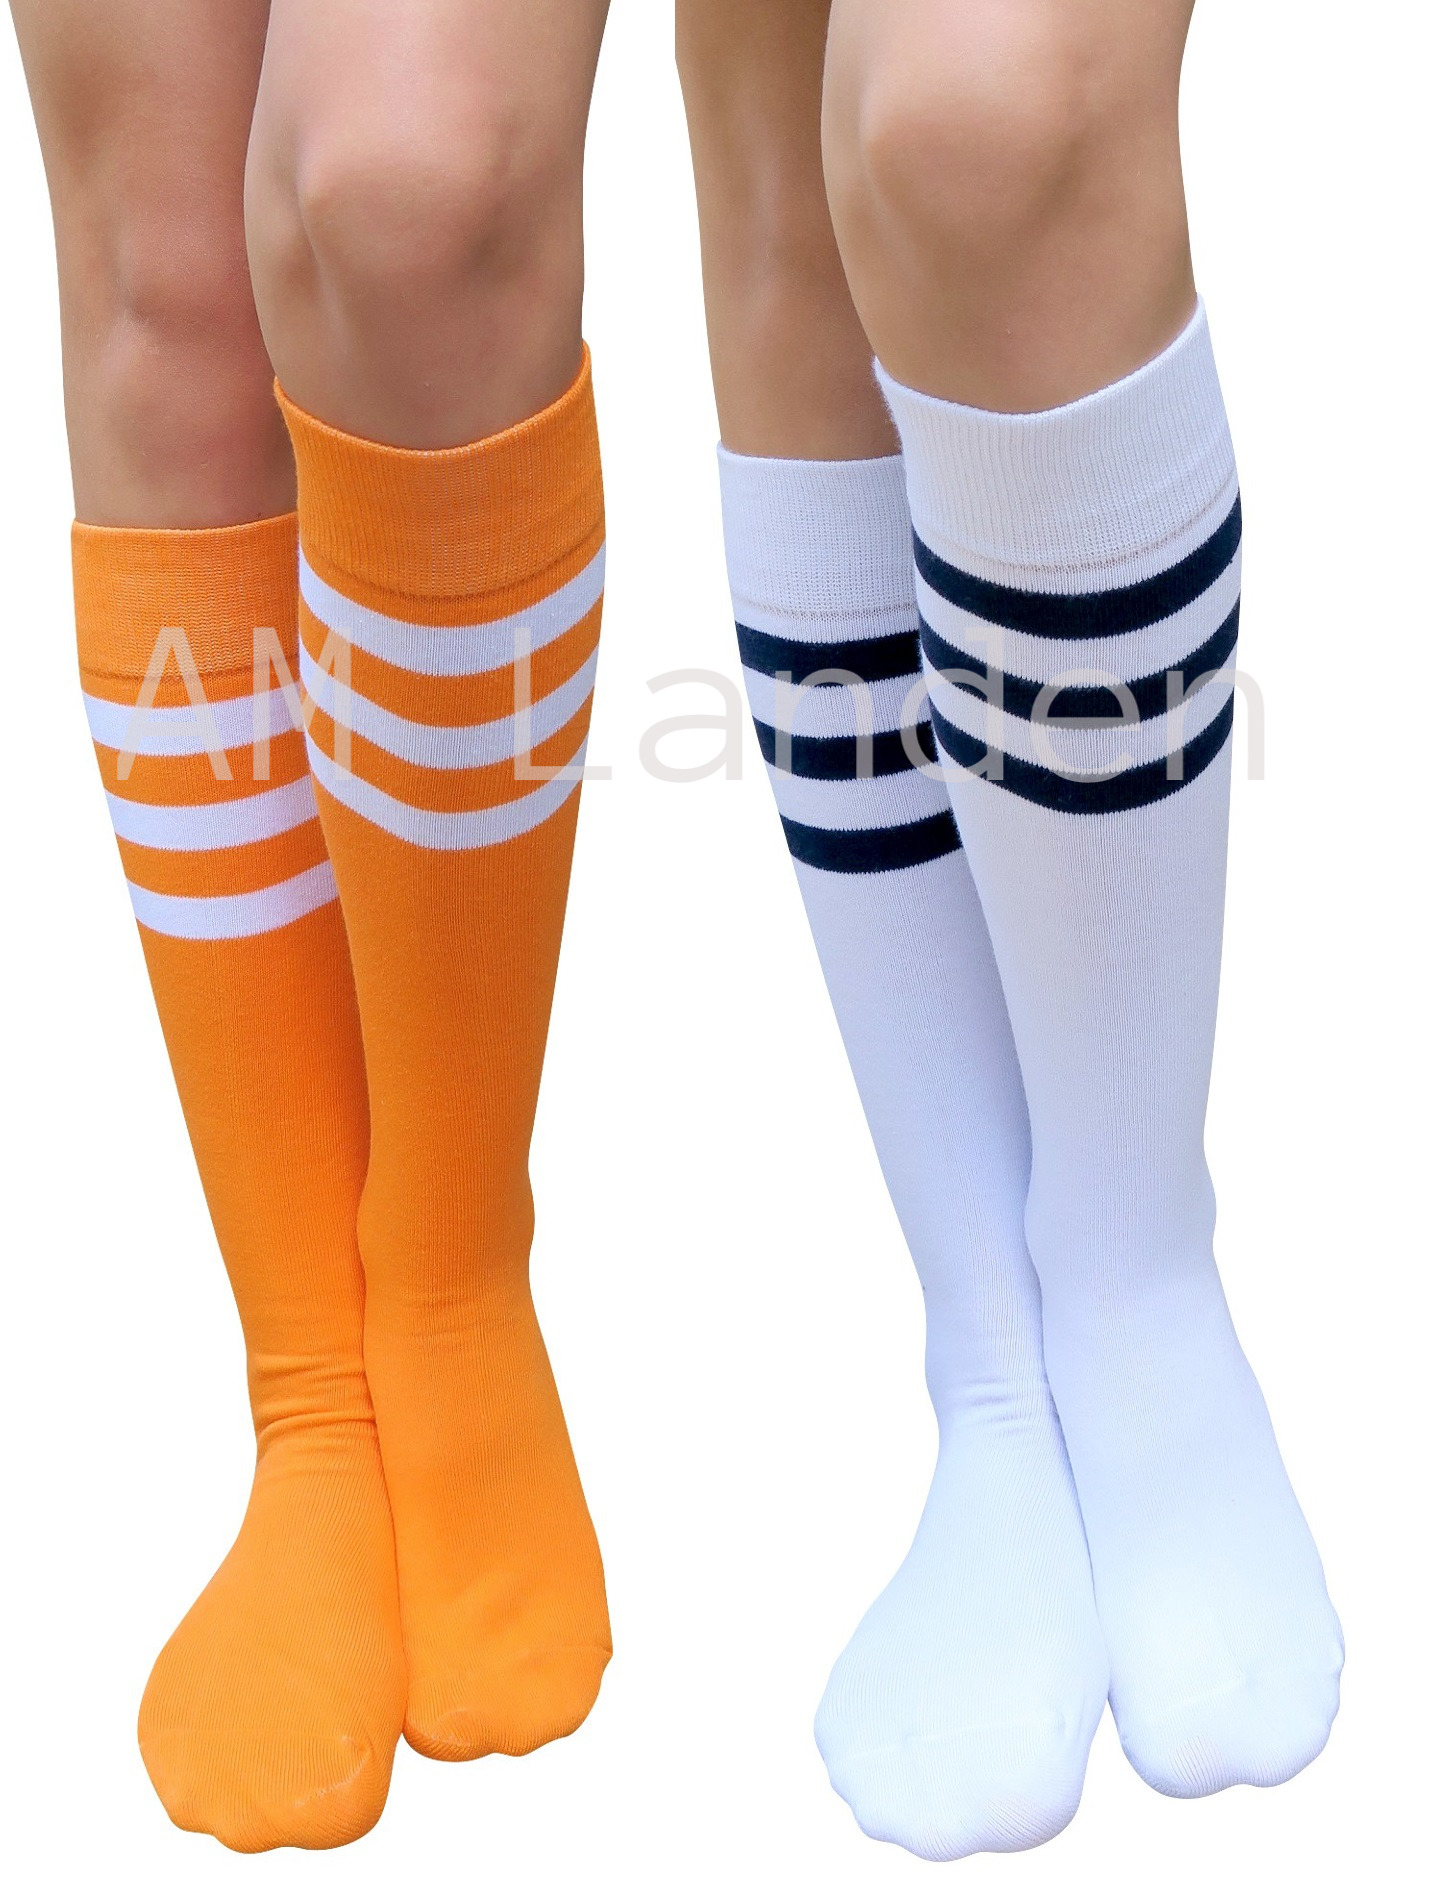 AM Landen Super Cute Triple Stripe Knee-High Cotton Socks (Orange+White)